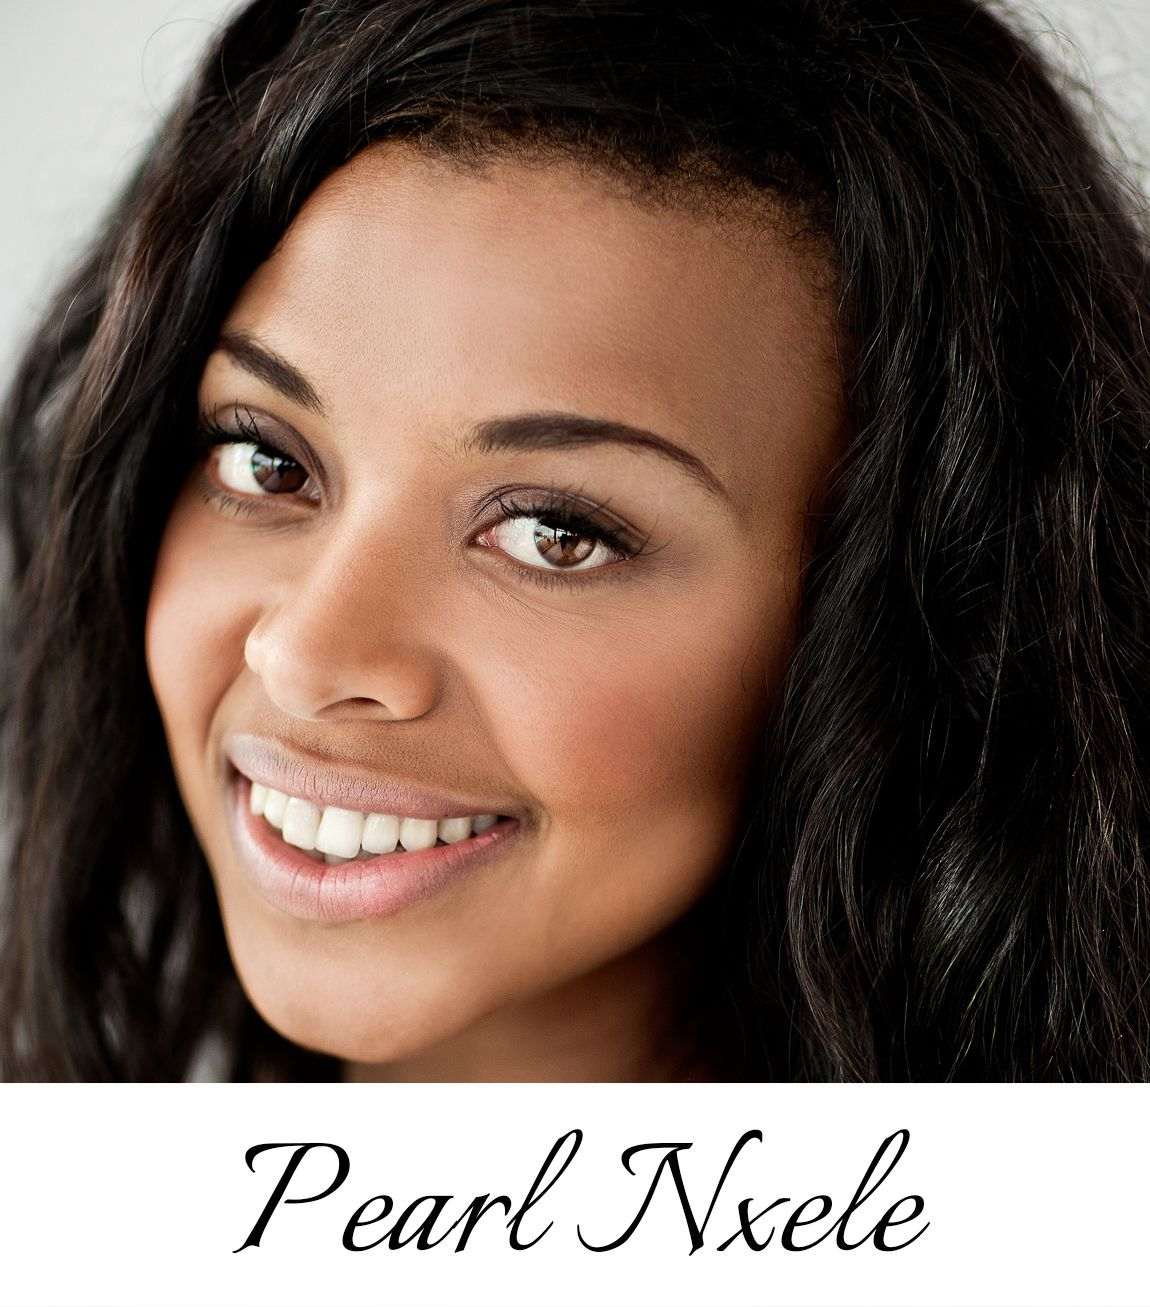 Pearl nxele dating